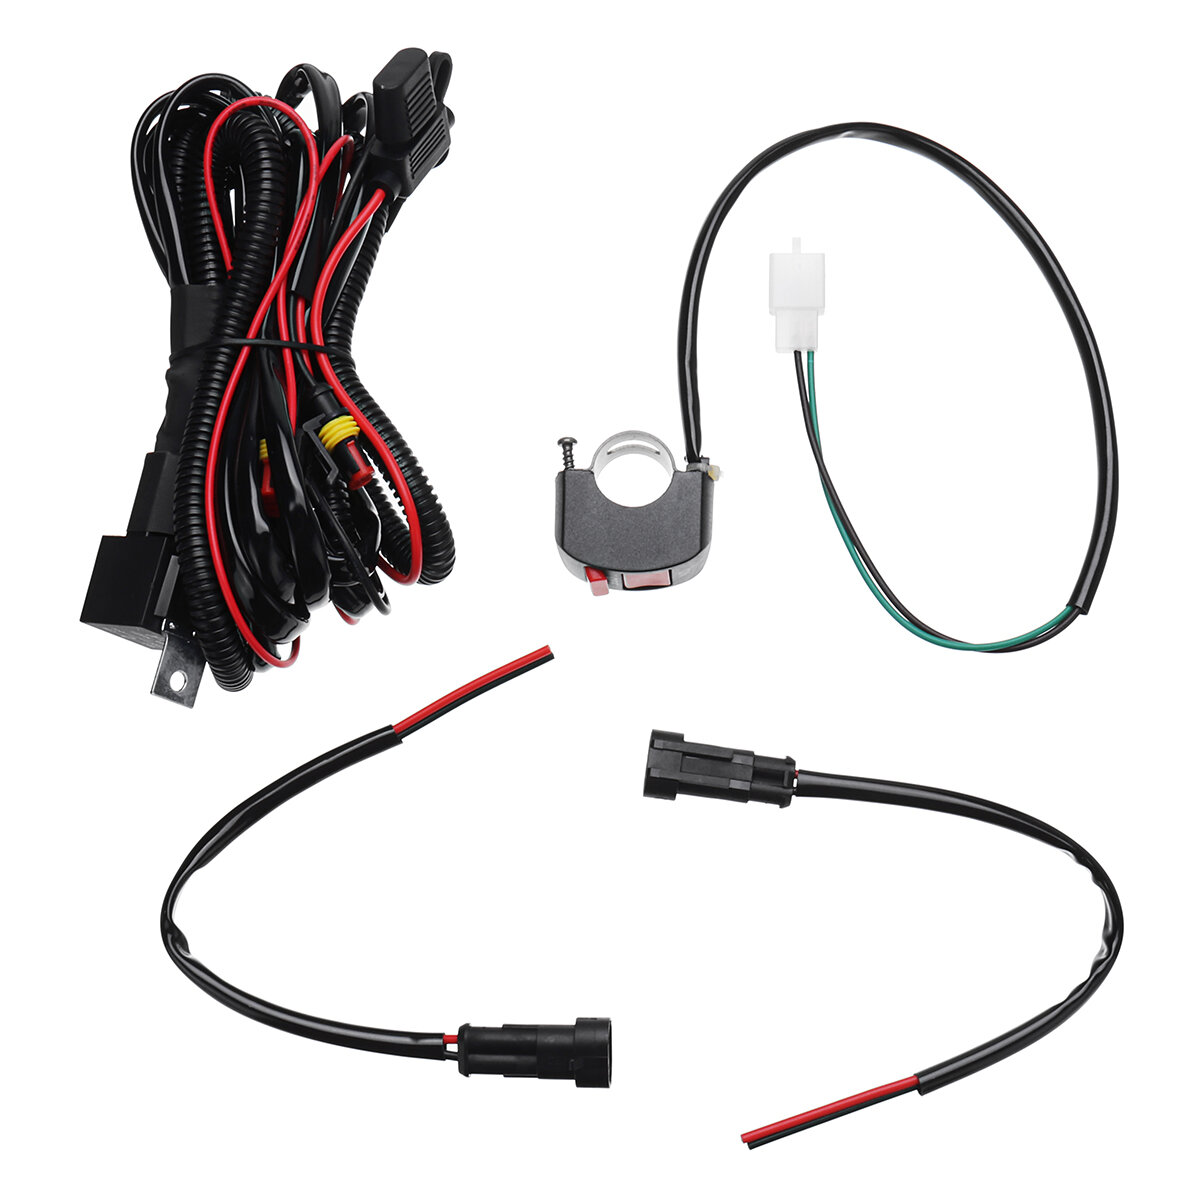 Peachy 10A Relsy Switch Fog Light Spot Wiring Loom Harness Kit For Wiring Digital Resources Antuskbiperorg